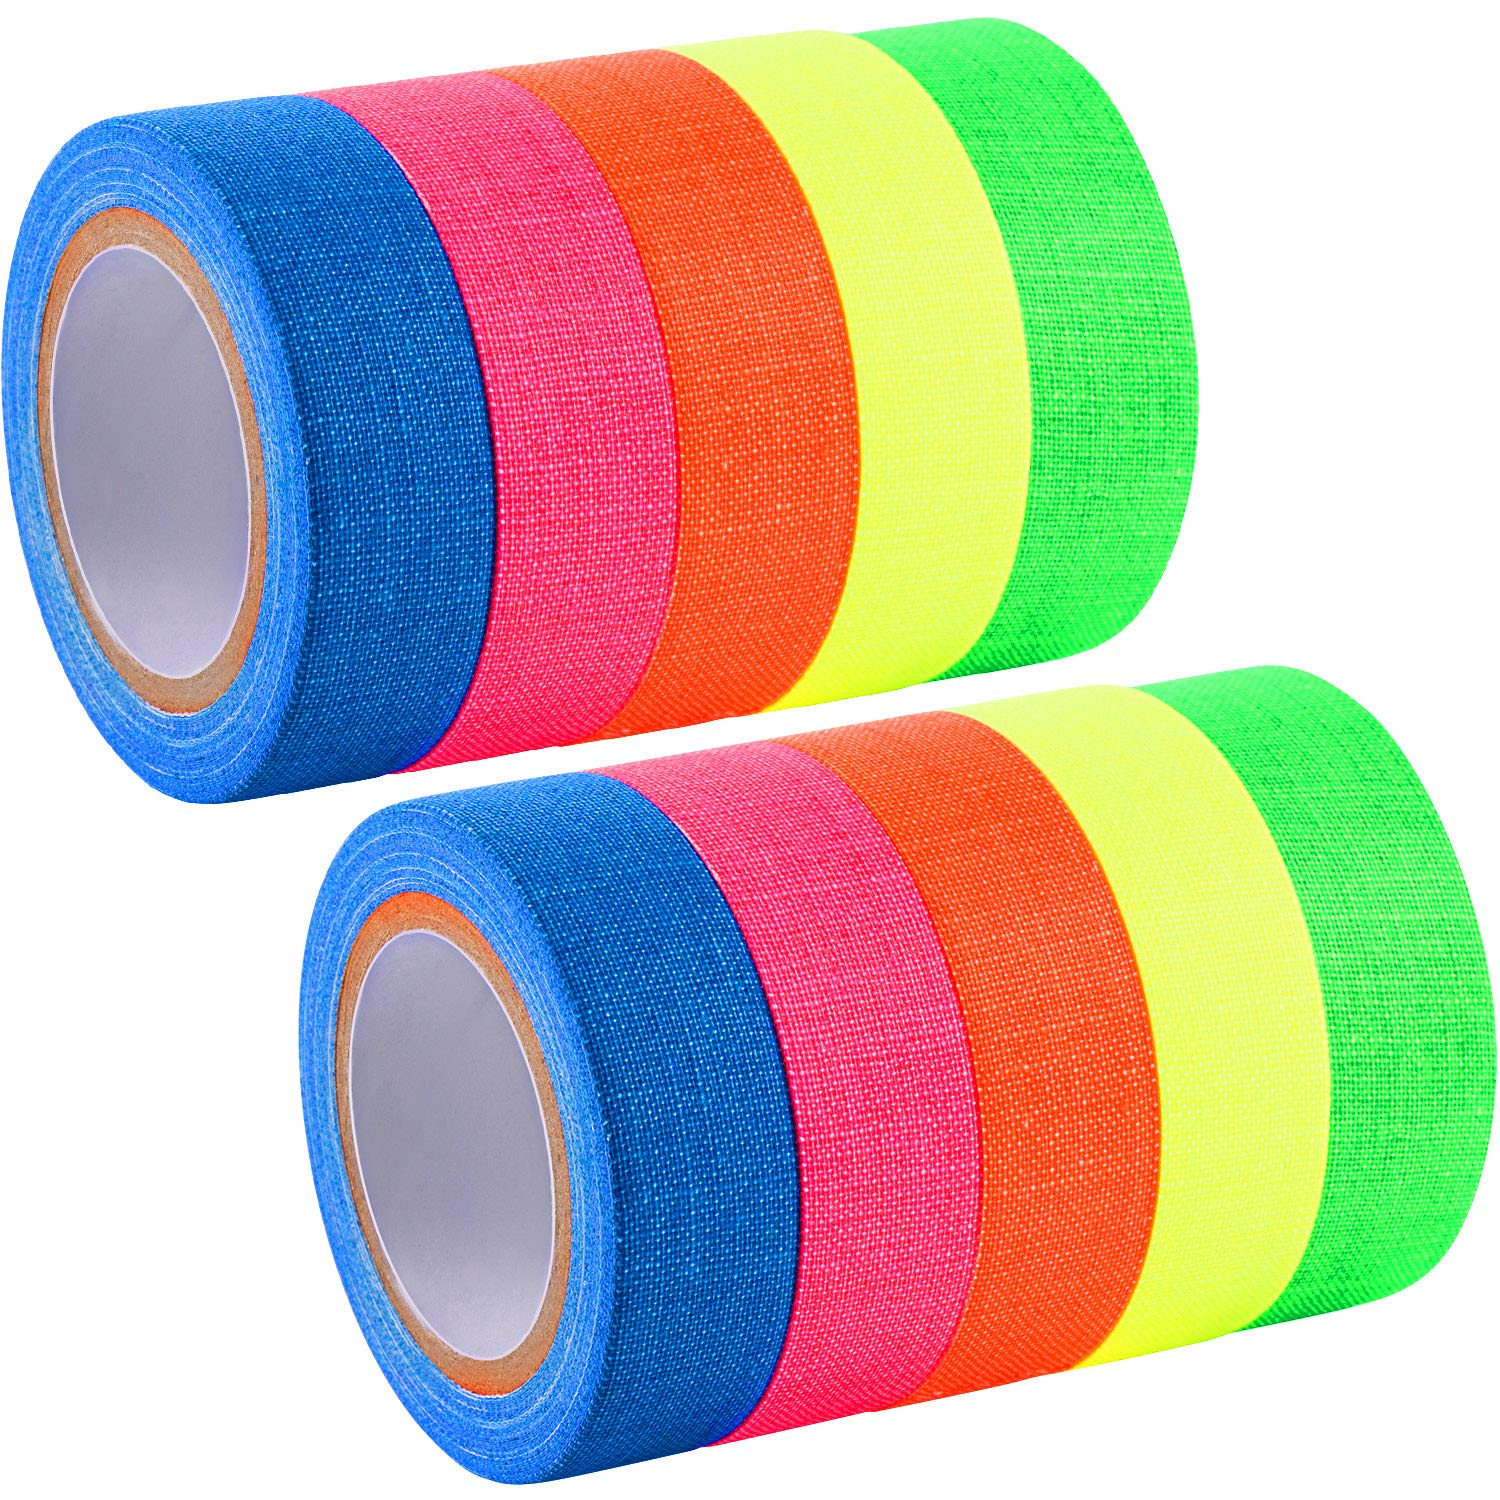 Jovitec Spike Tape Fluorescent Adhesive Tapes Gaffer Tape UV Blacklight Reactive Neon Tapes for Parties Art Craft Decorations, 5 Colors (10 Rolls)